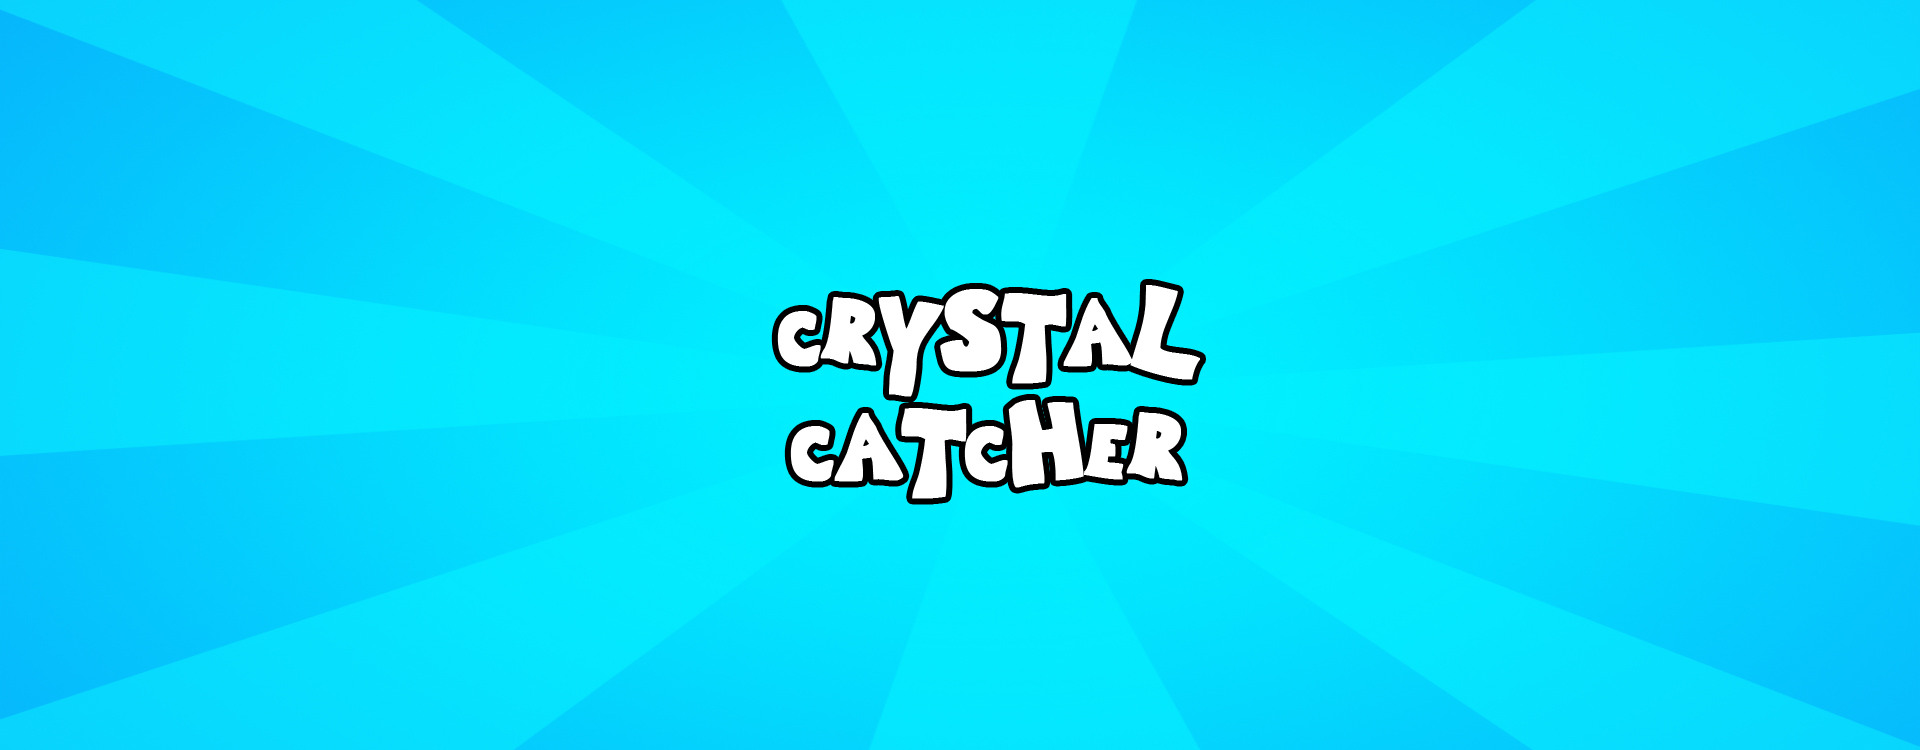 Crystal Catcher